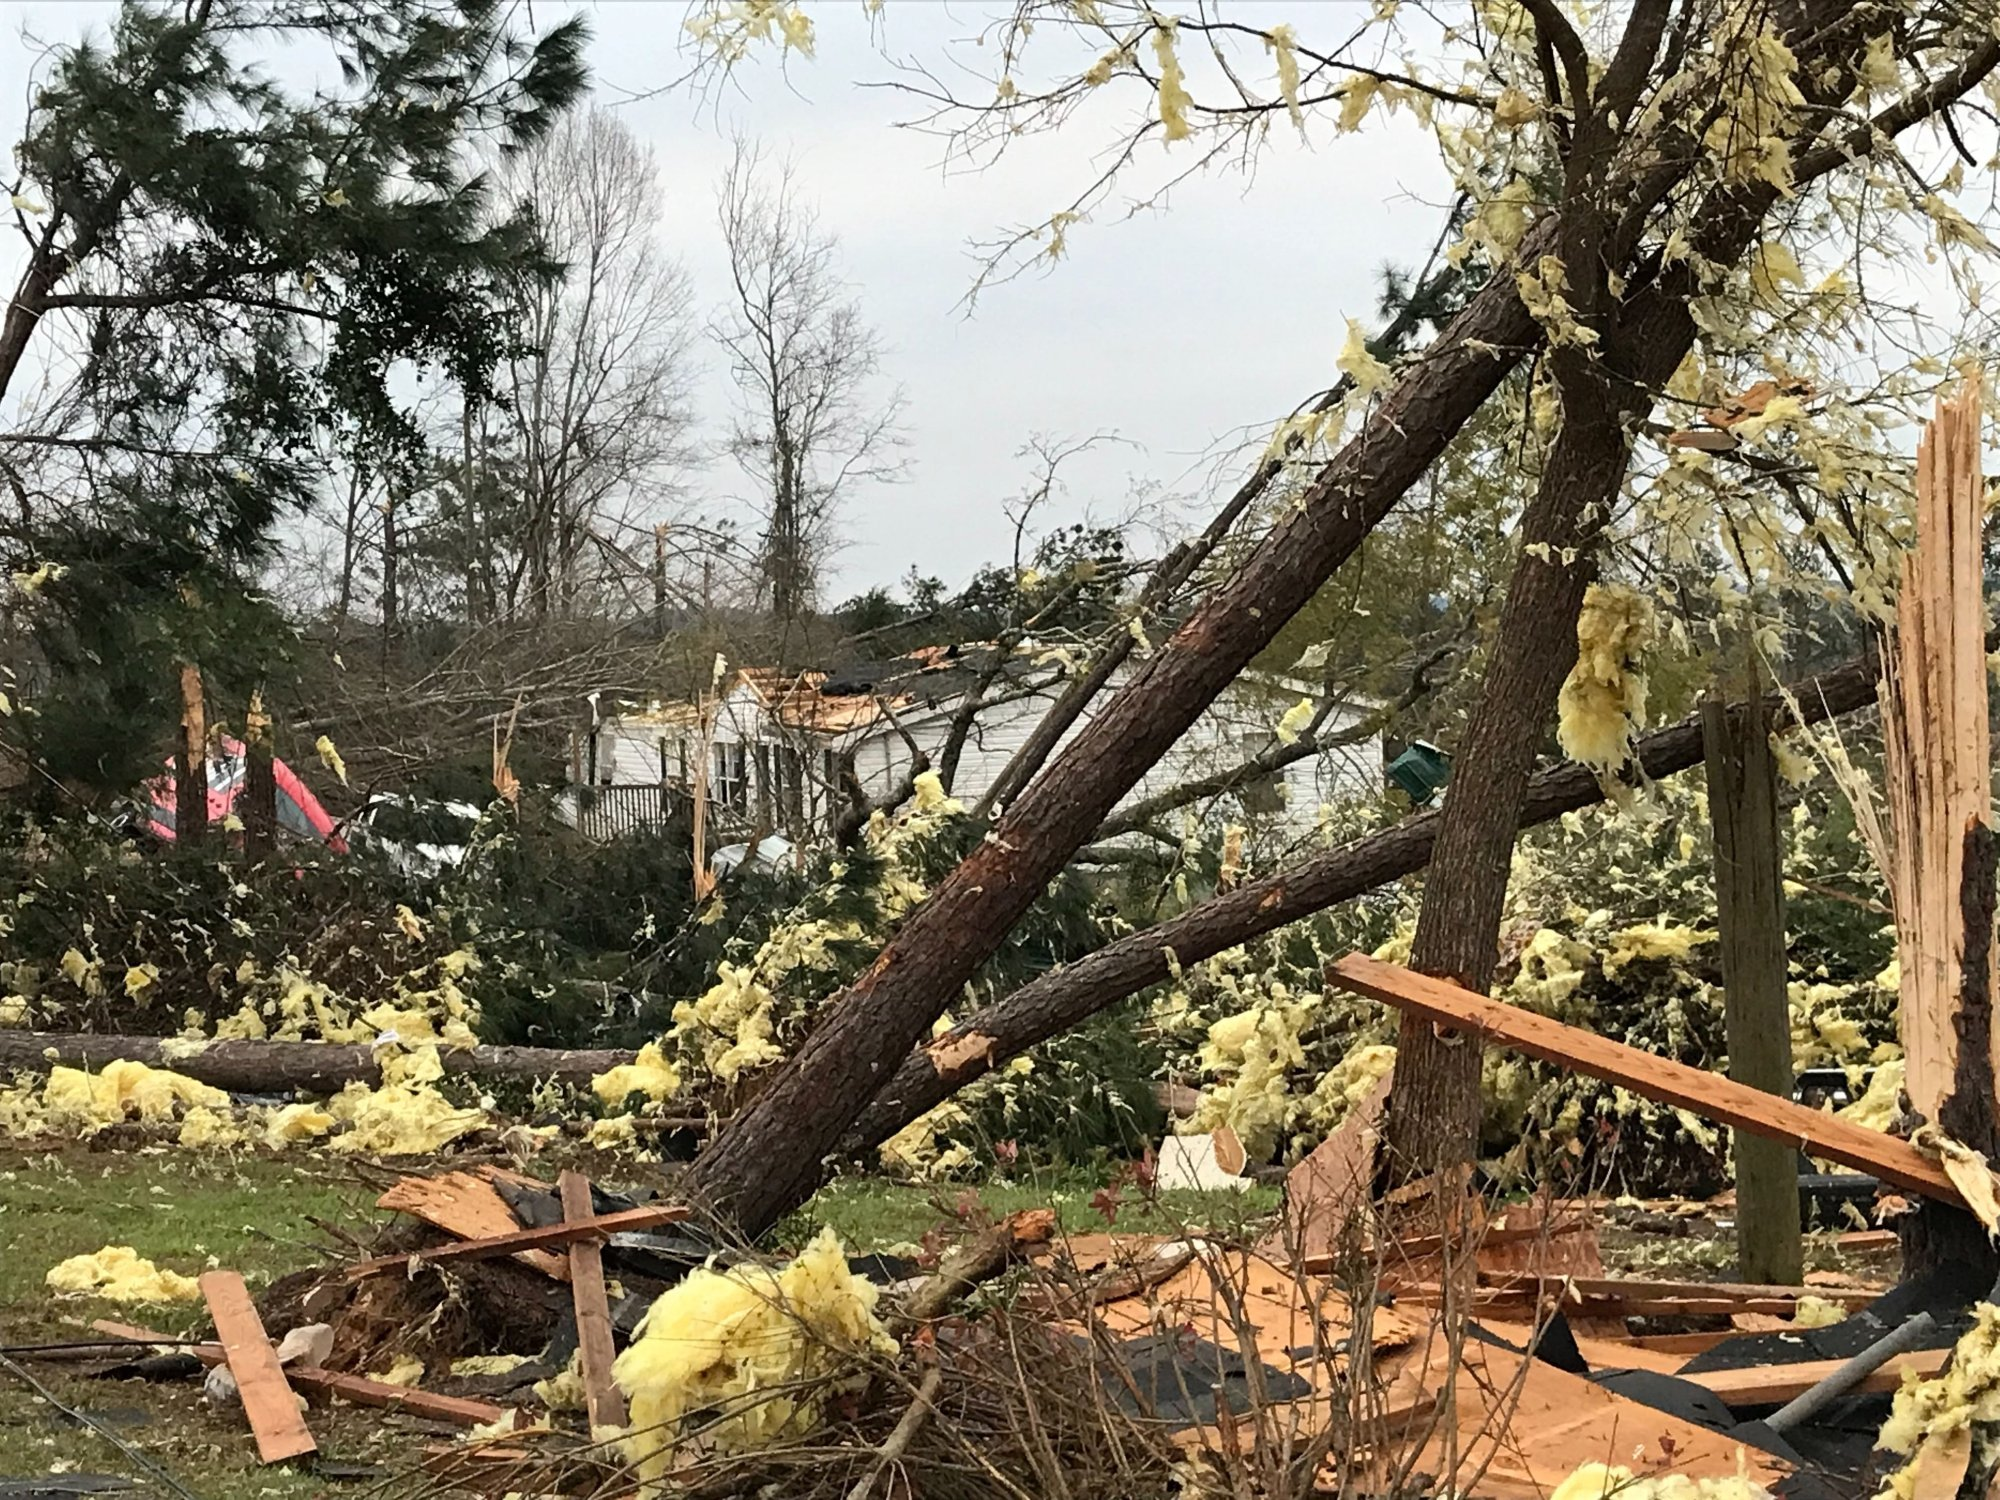 A home stands among downed trees after tornadoes passed through Opelika, Alabama, on March 4, 2019.